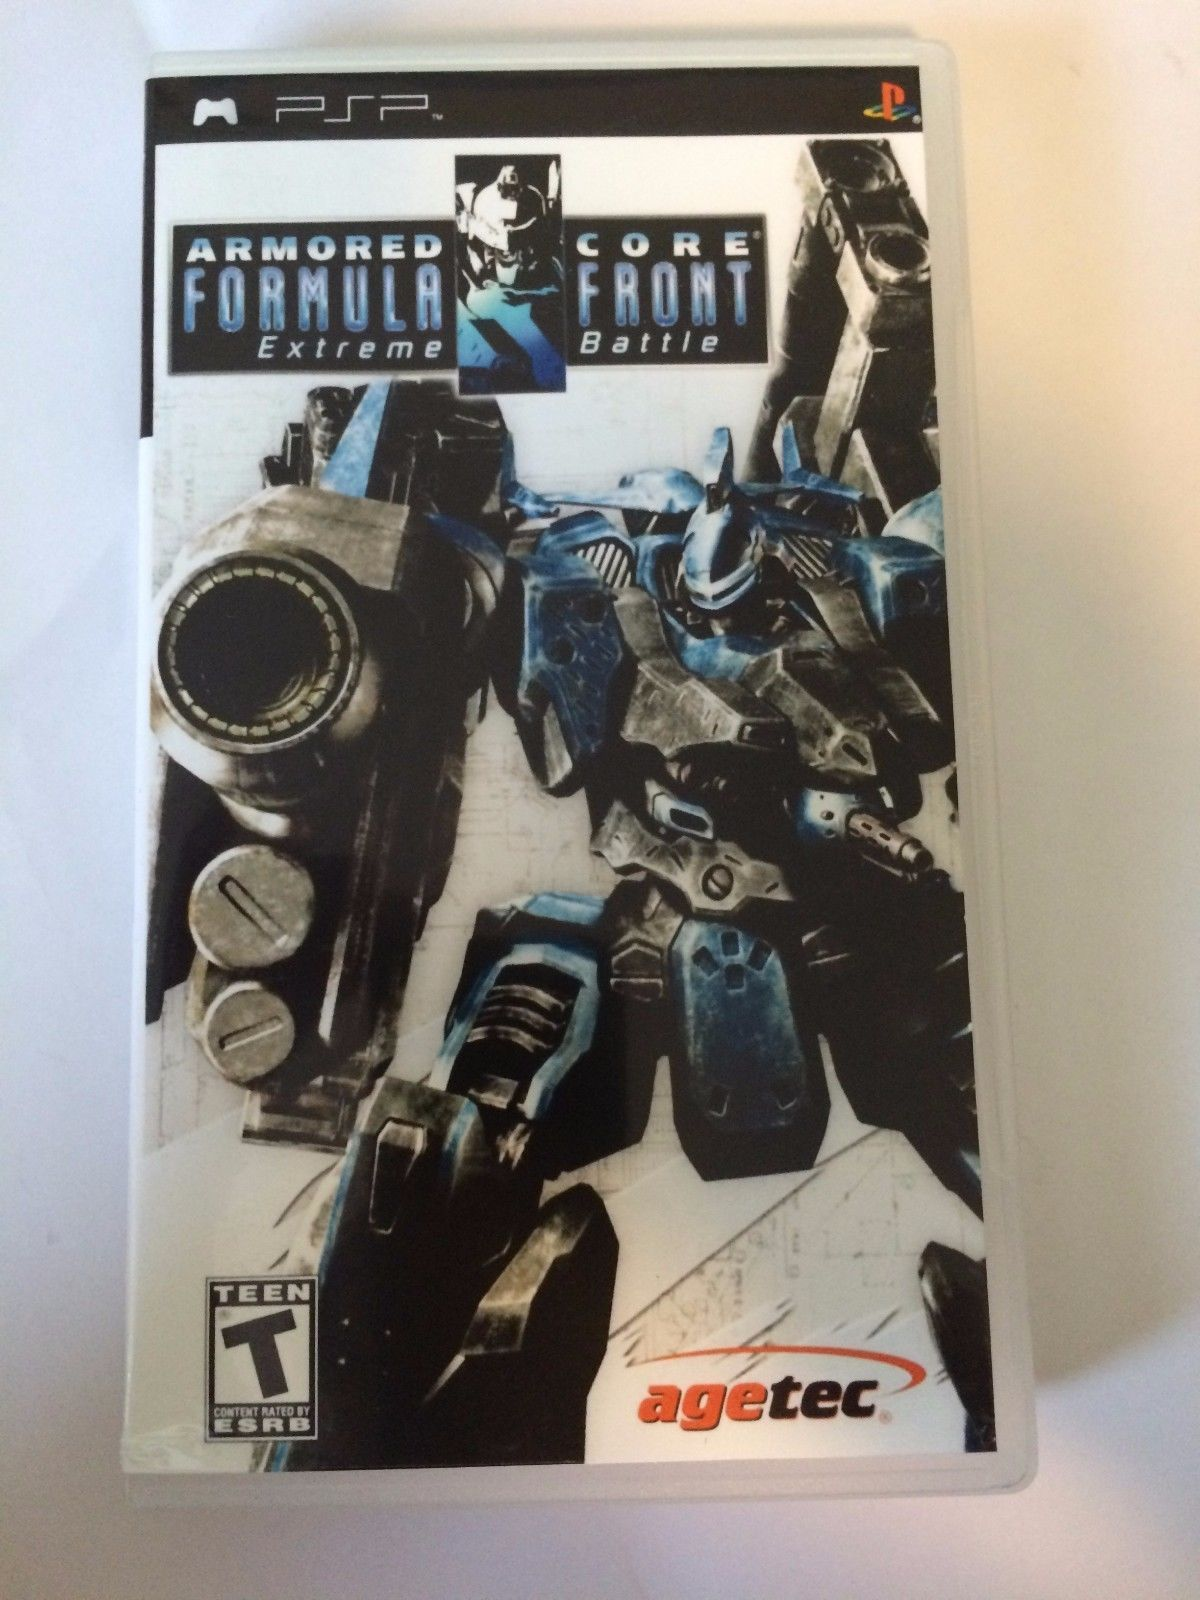 Armored Core Formula Front - Sony PSP - Replacement Case - No Game